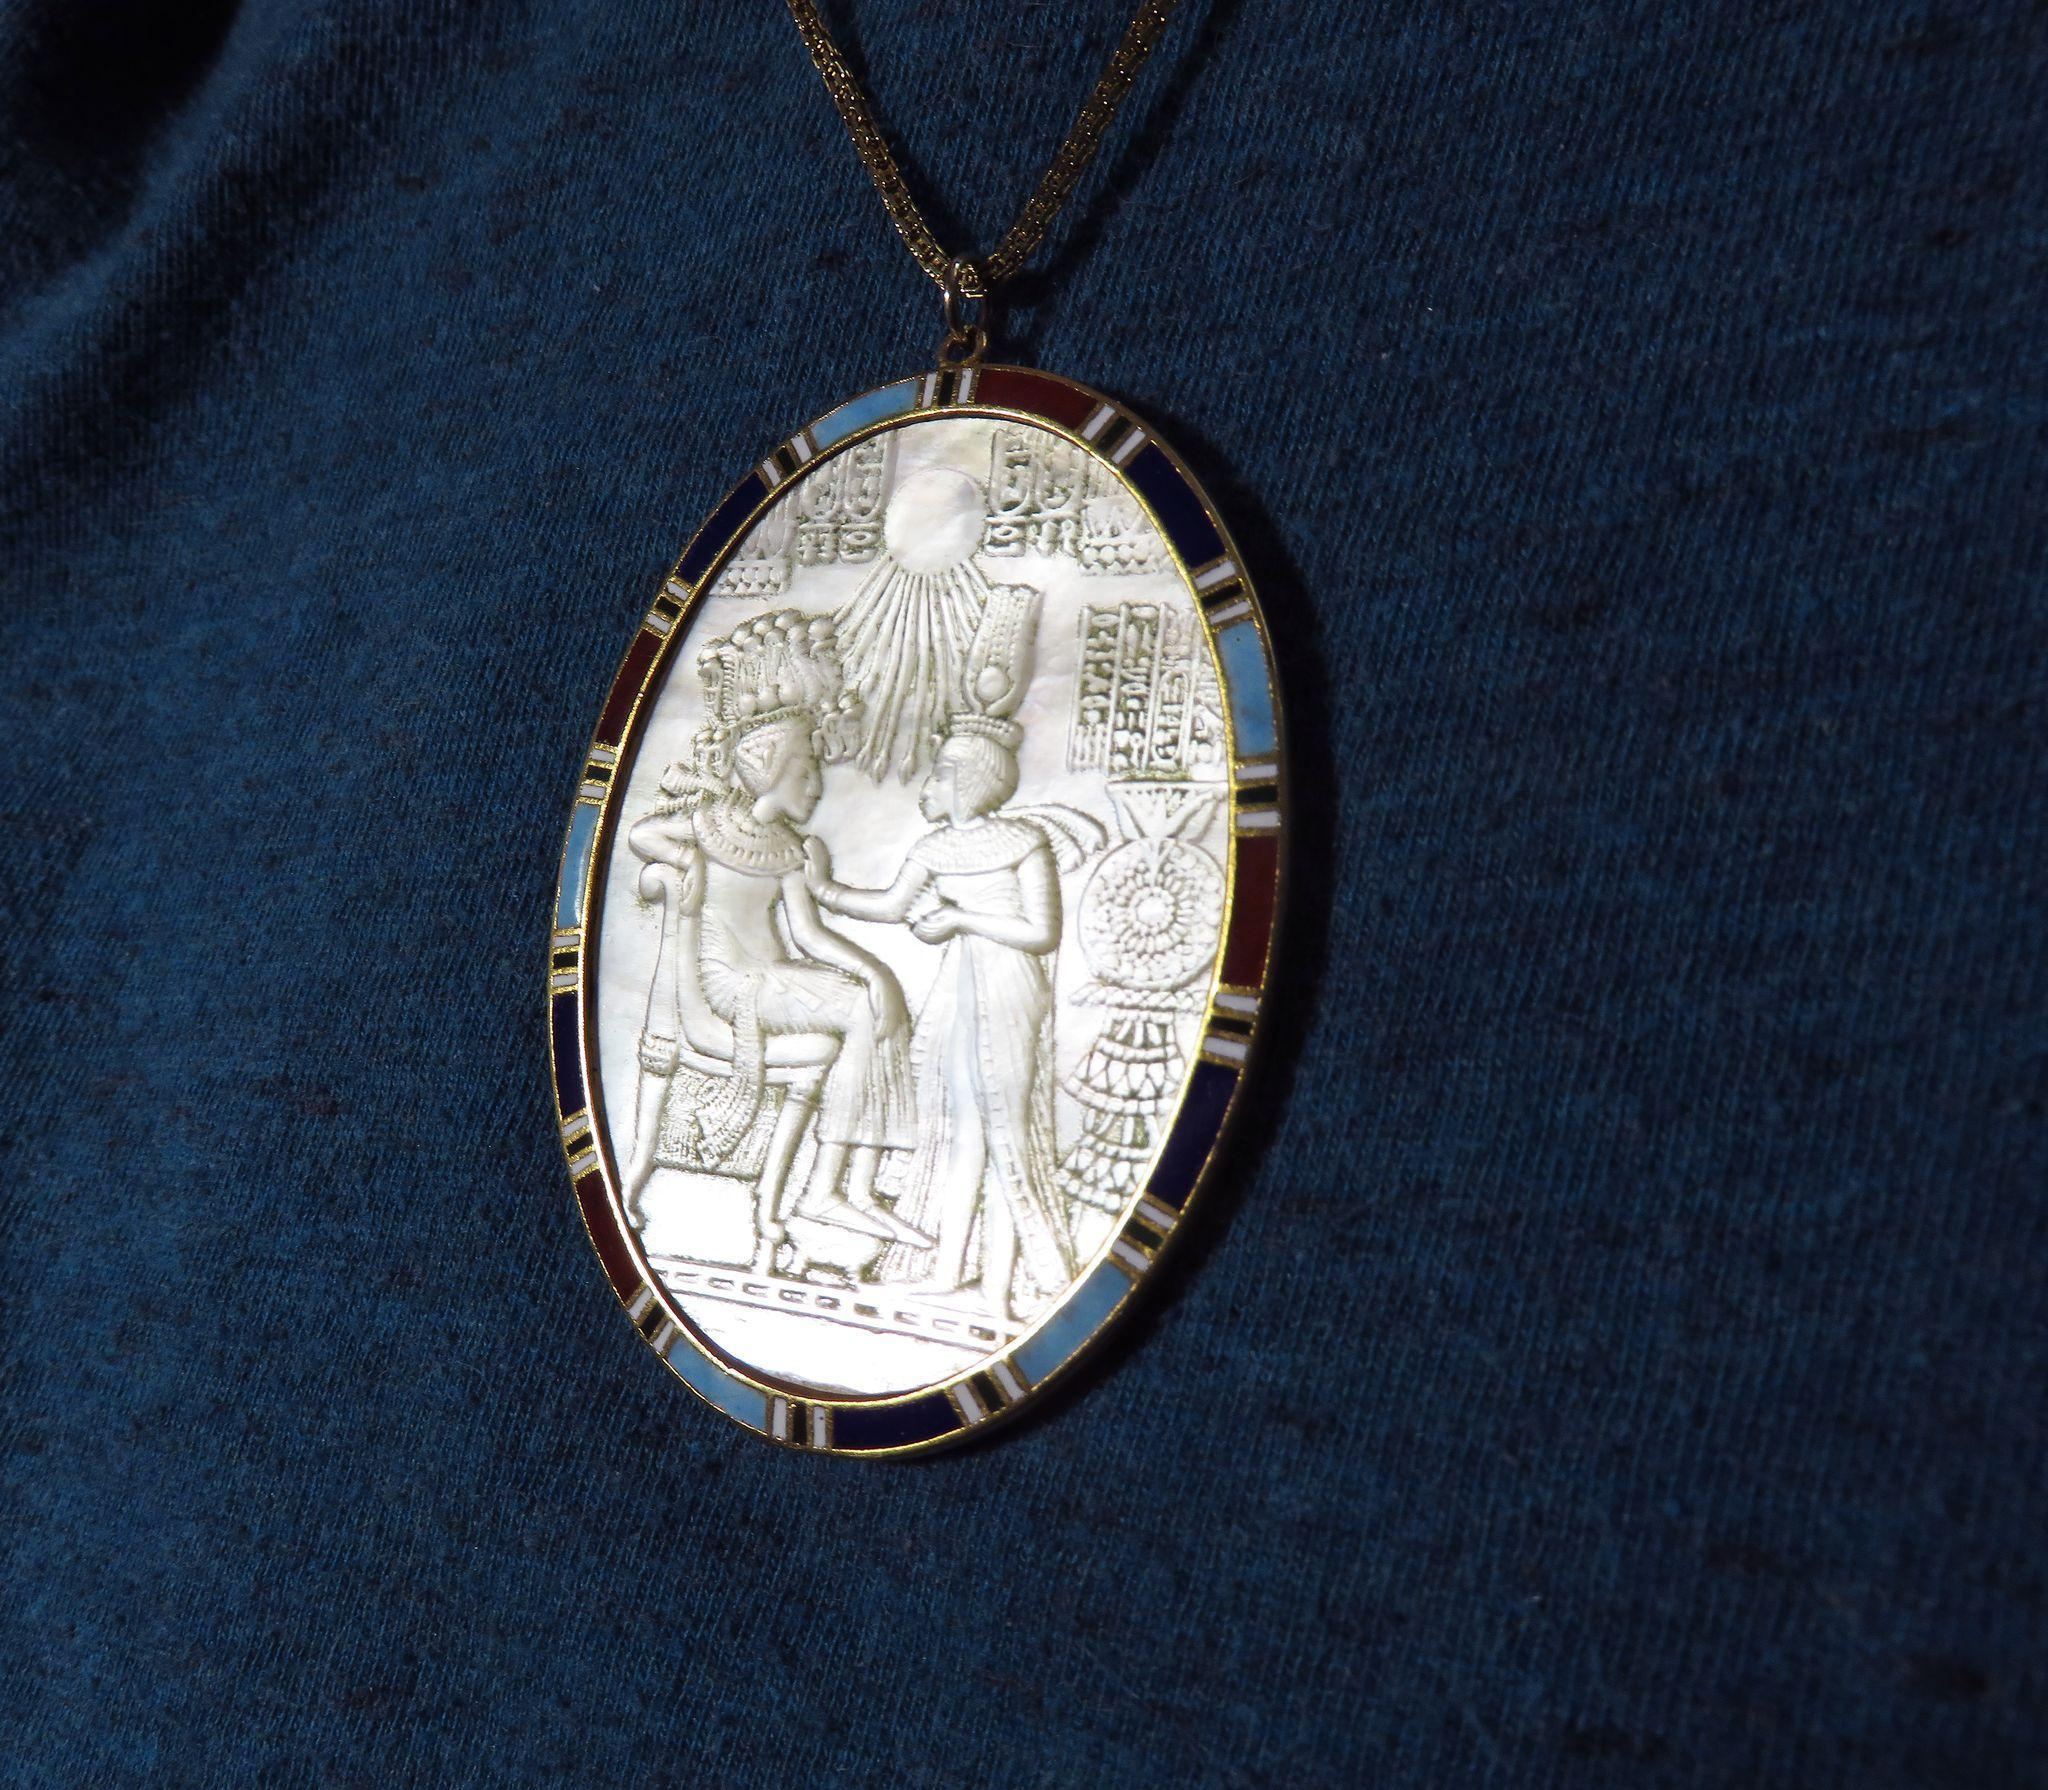 MASTERPIECE Egyptian Revival MOP Cameo in 22k Enameled Pendant Frame, c.1865!